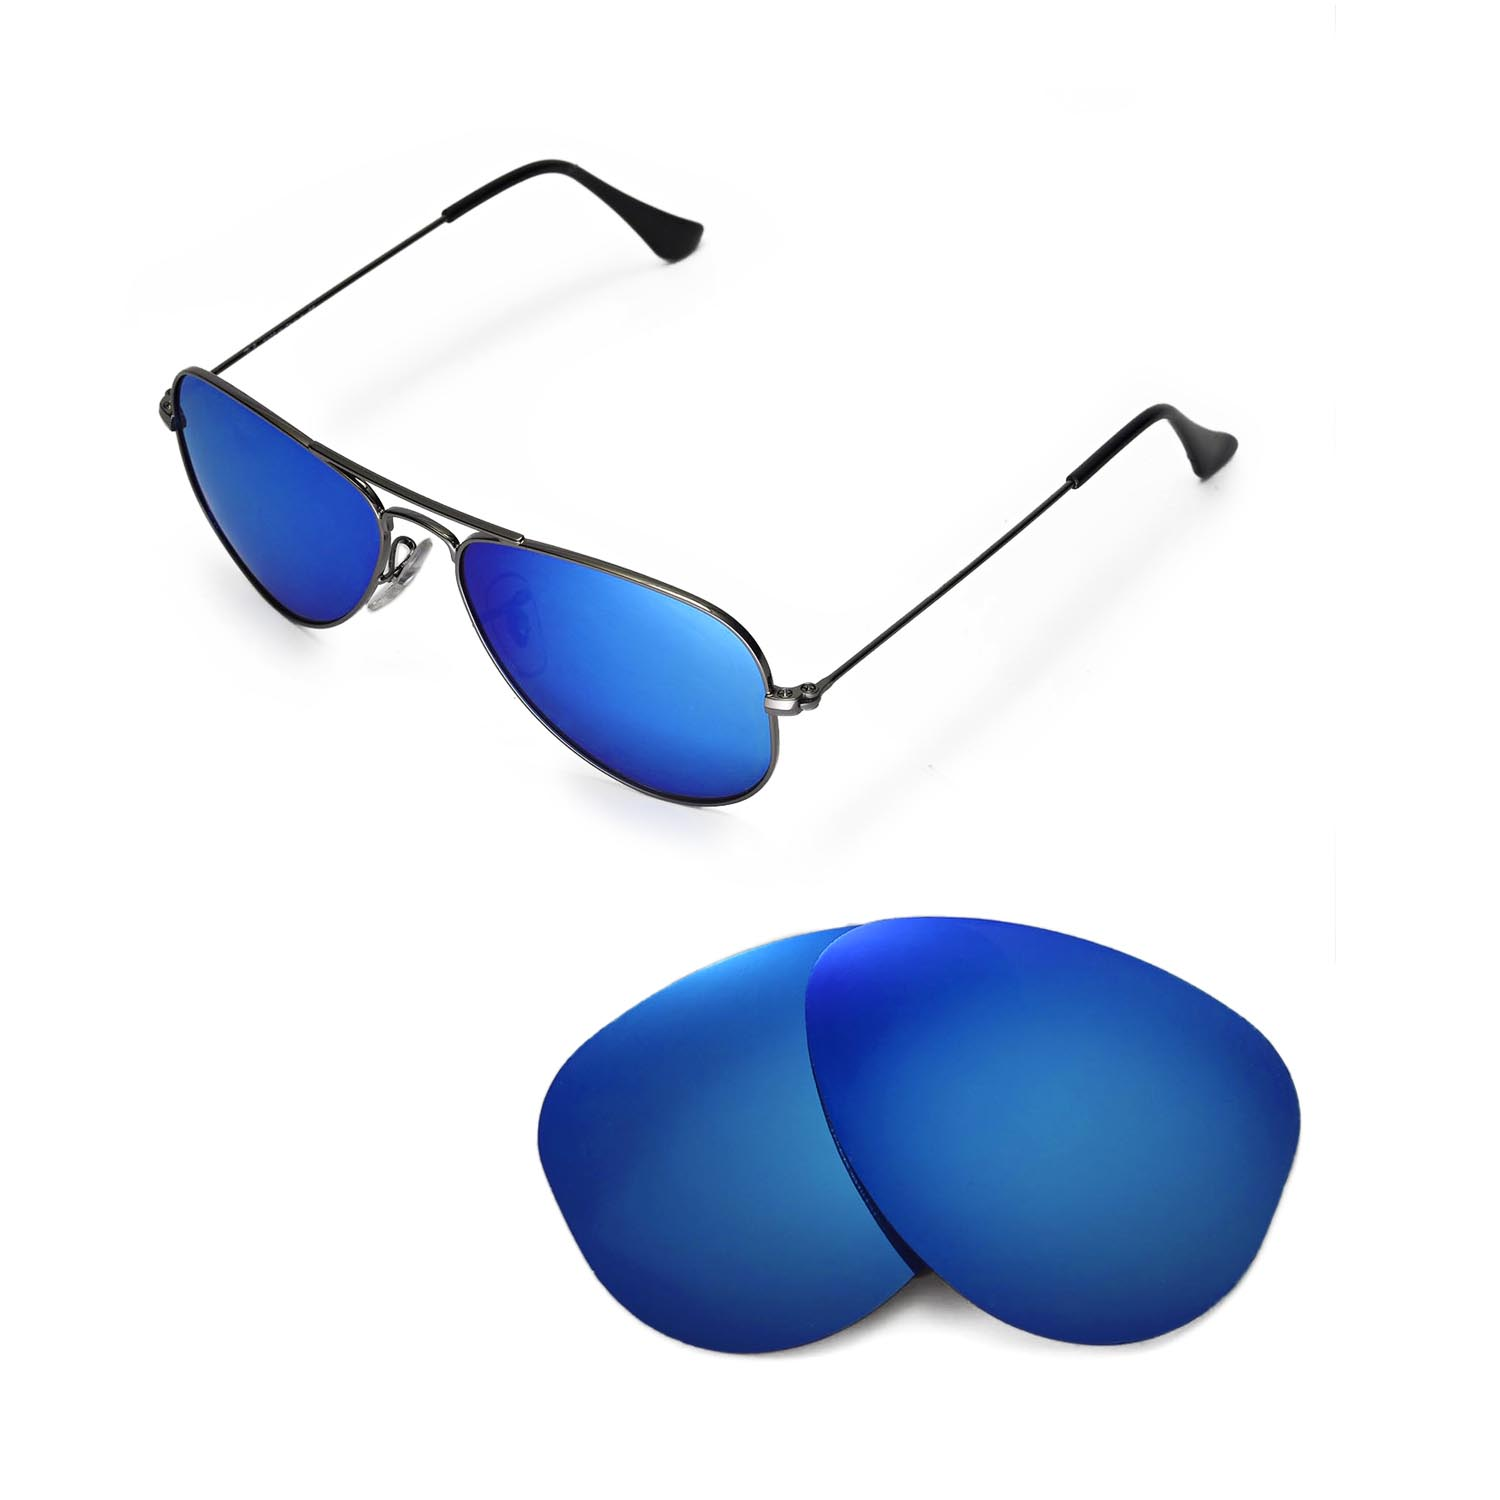 ray ban aviator blue glass  new walleva polarized ice blue lenses 4 ray ban aviator rb3044 small metal 52mm